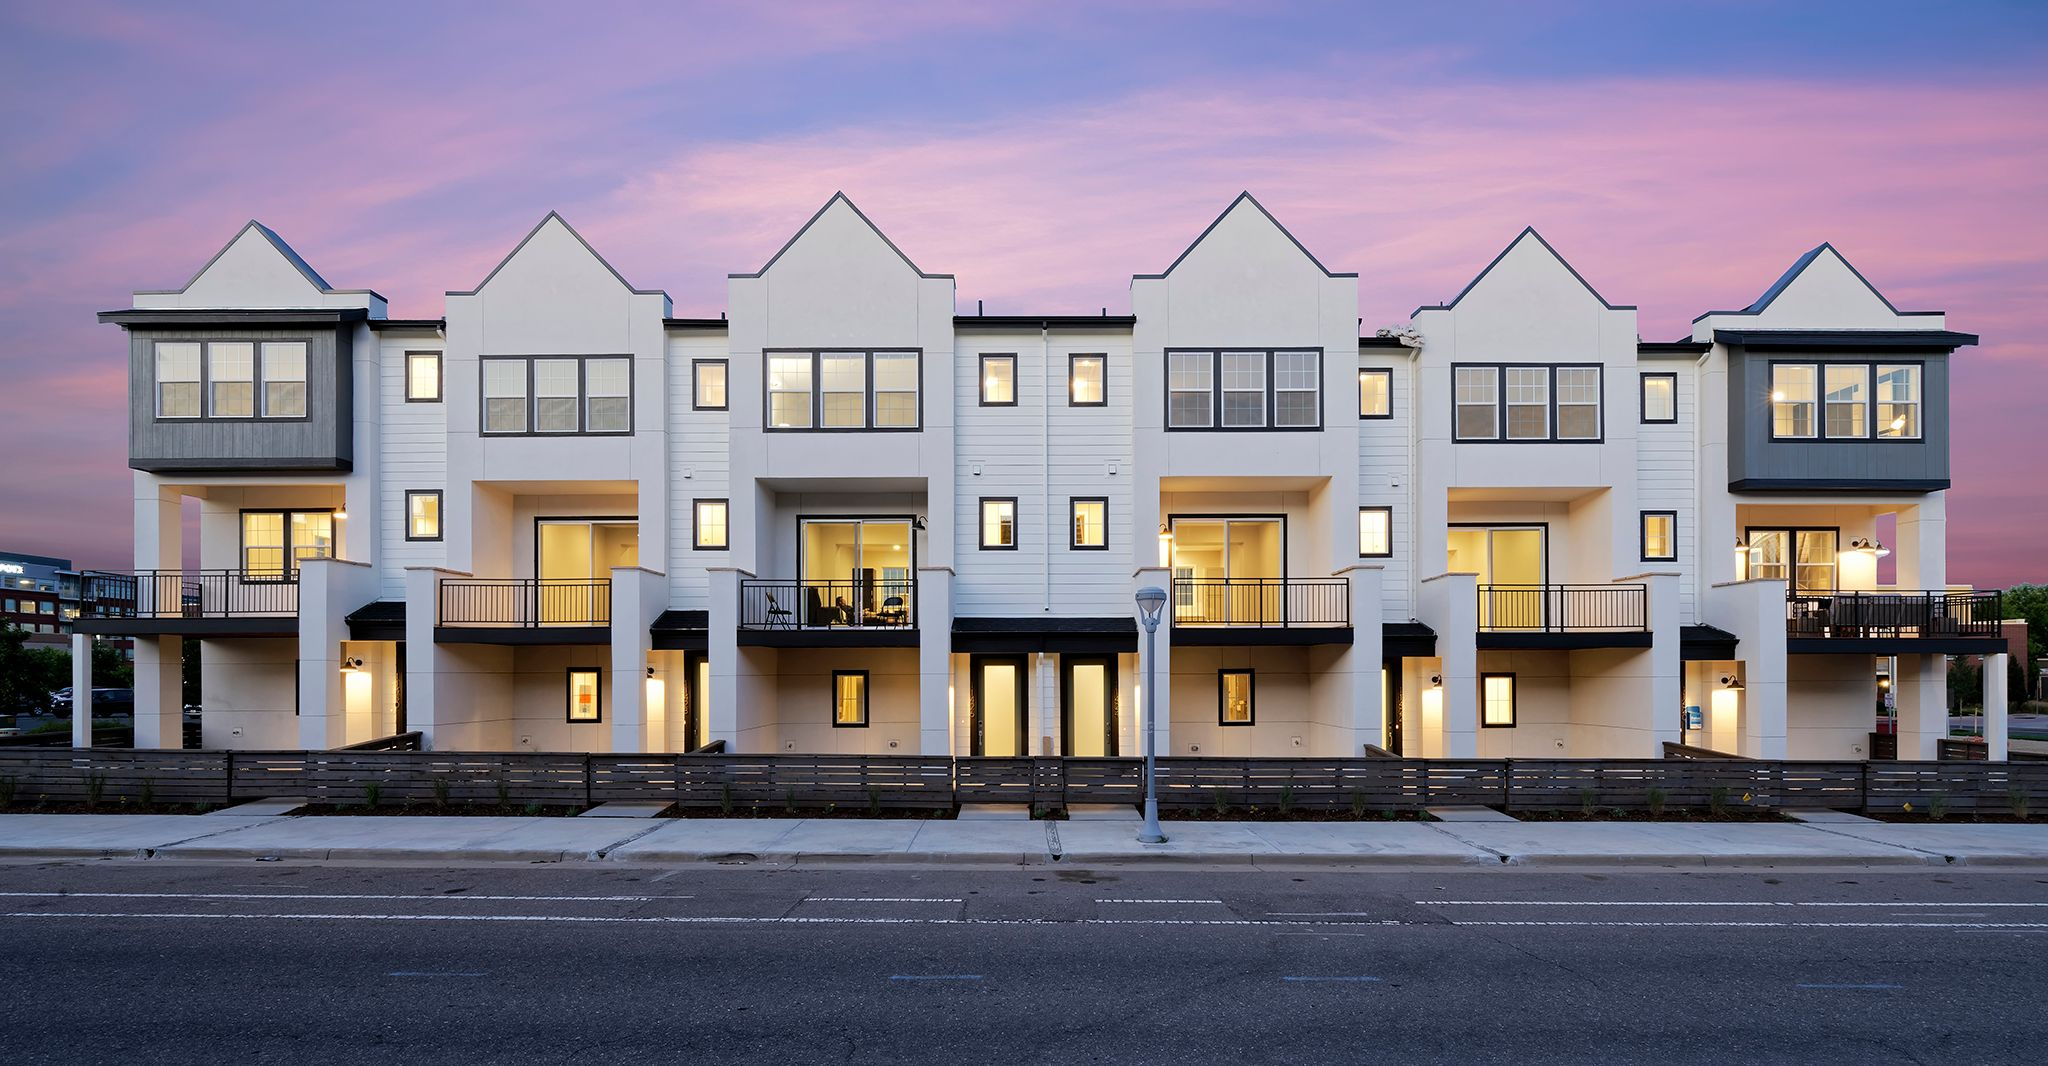 'Arista' by Thrive Home Builders in Denver